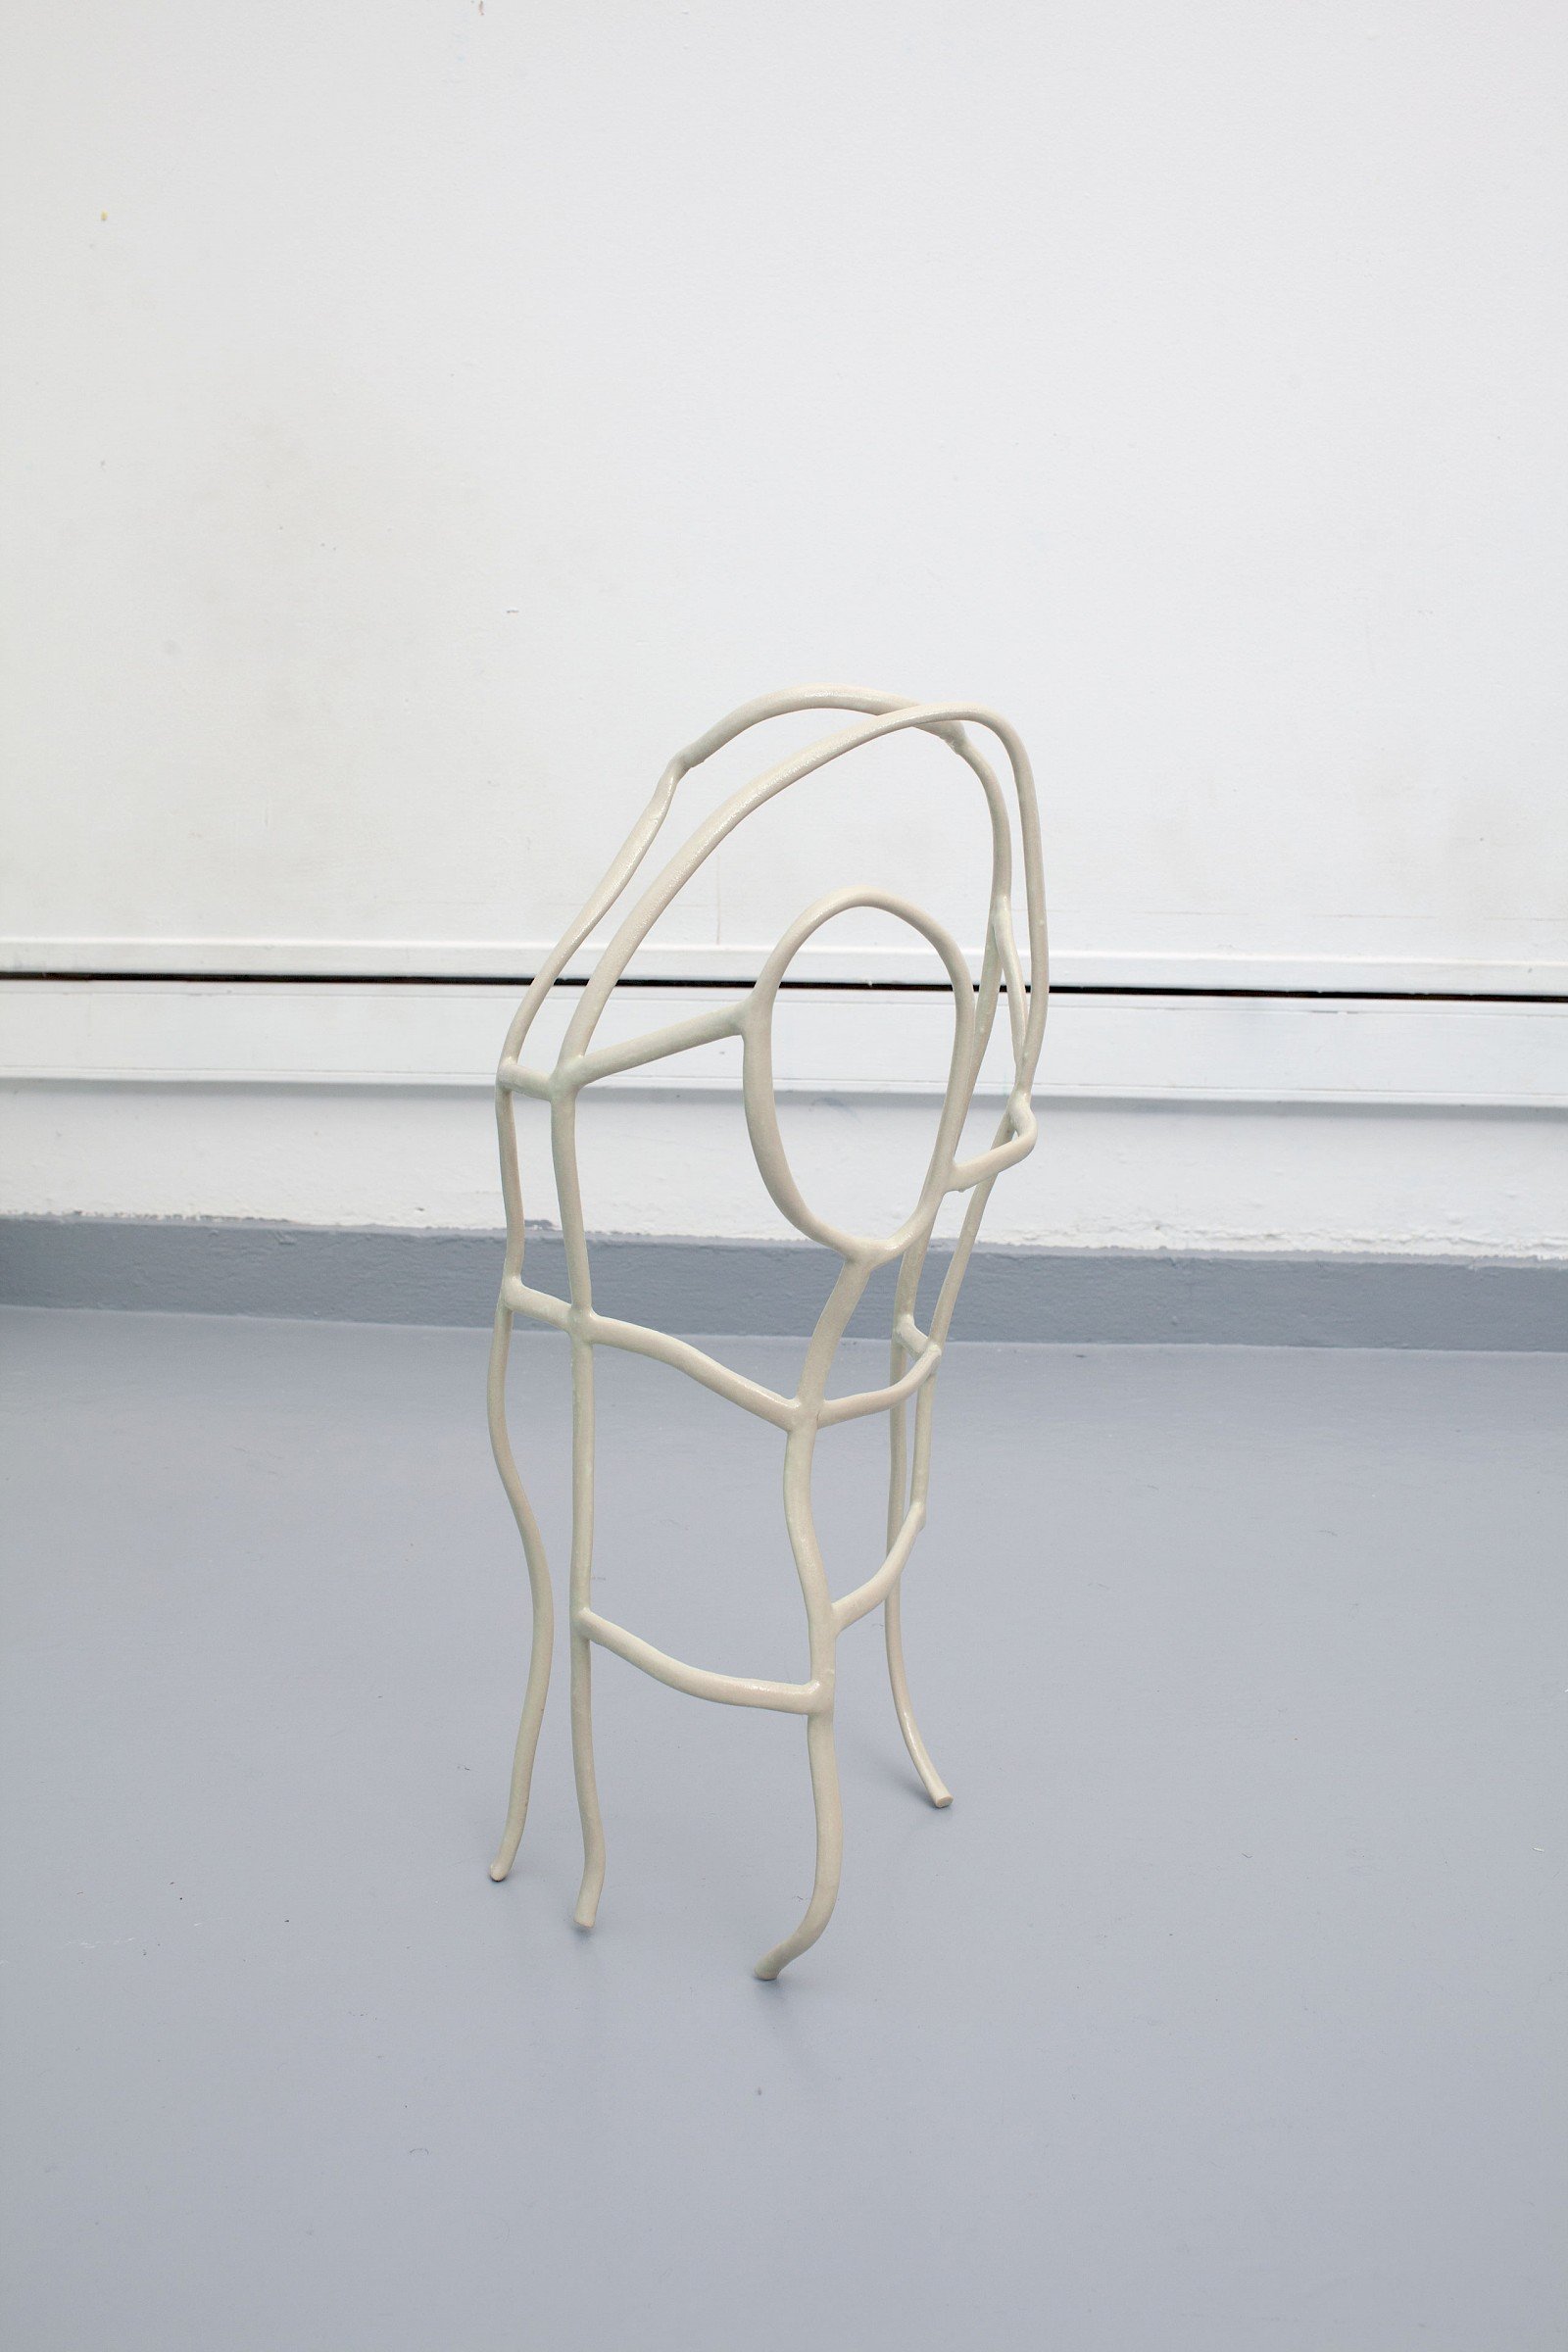 Image - Body electric, 35 × 29 × 65 cm